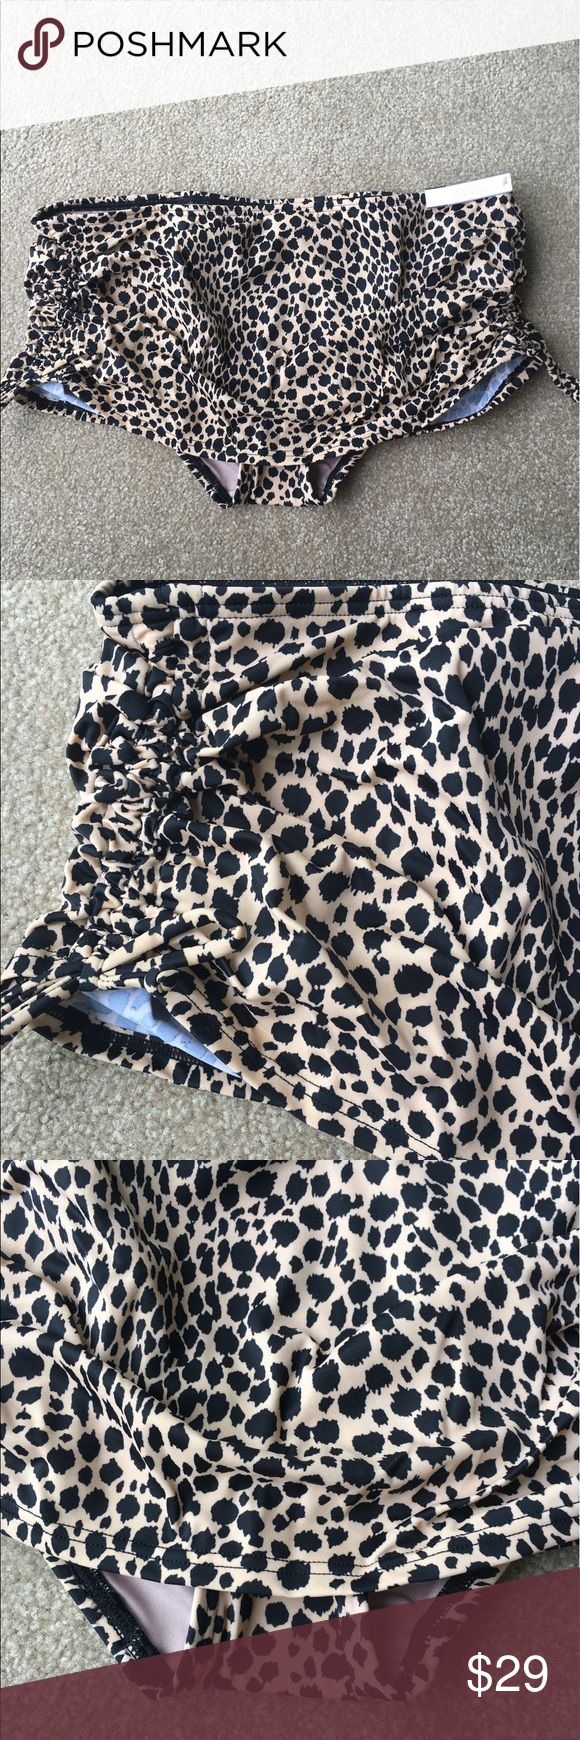 Large Victoria Secret Skirted Bikini - Leopard Brand new Victoria's Secret Swim Bikinis